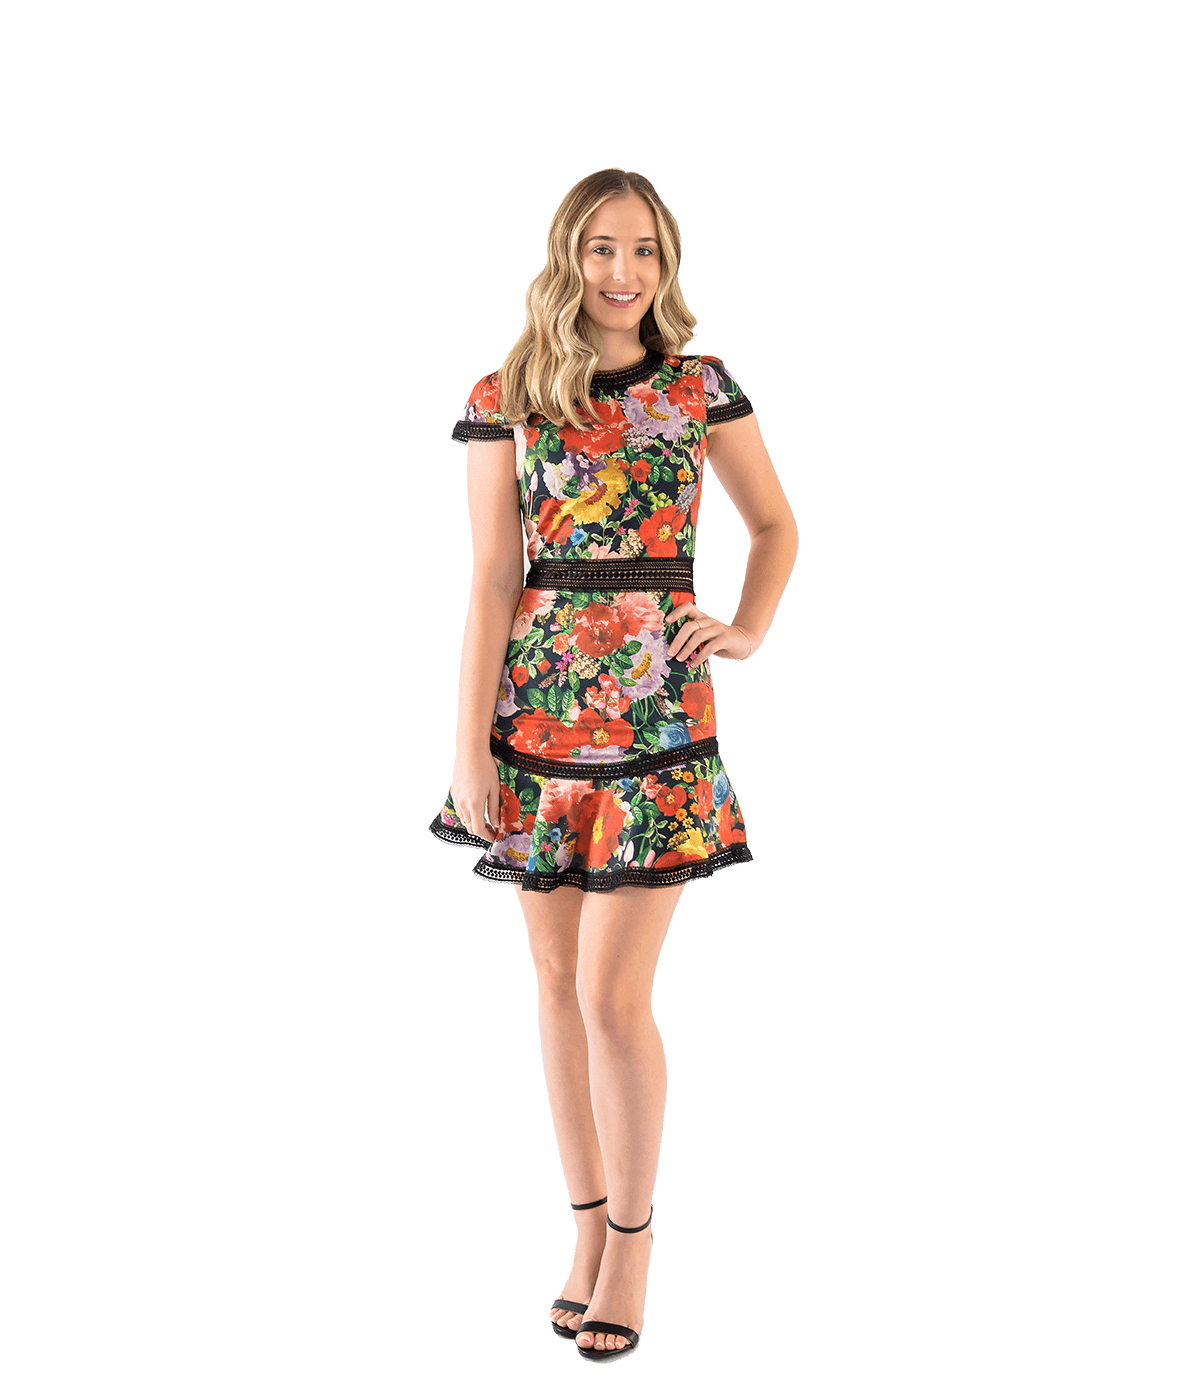 Rapunzel Dress - Blooming Garden - Lady Jetset